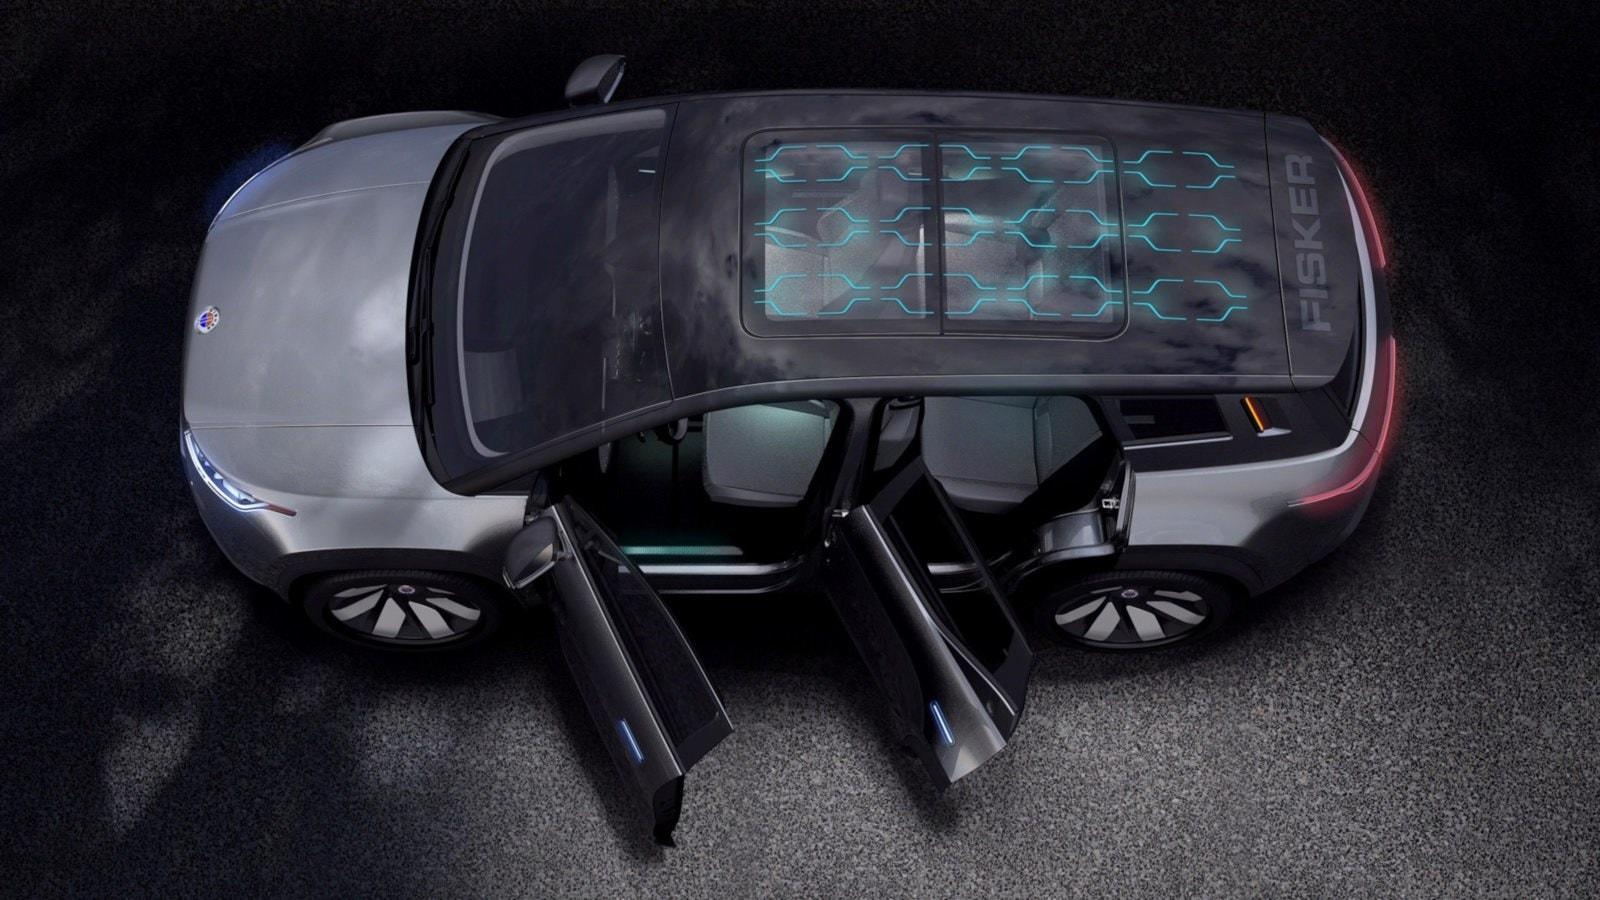 Henrik Fisker is a serial entrepreneur. His latest venture, another self-named electric automotive brand, is founded on vaporware technology and an improbably low price point. But we hope this lovely, long-range, affordable SUV will one day exist.